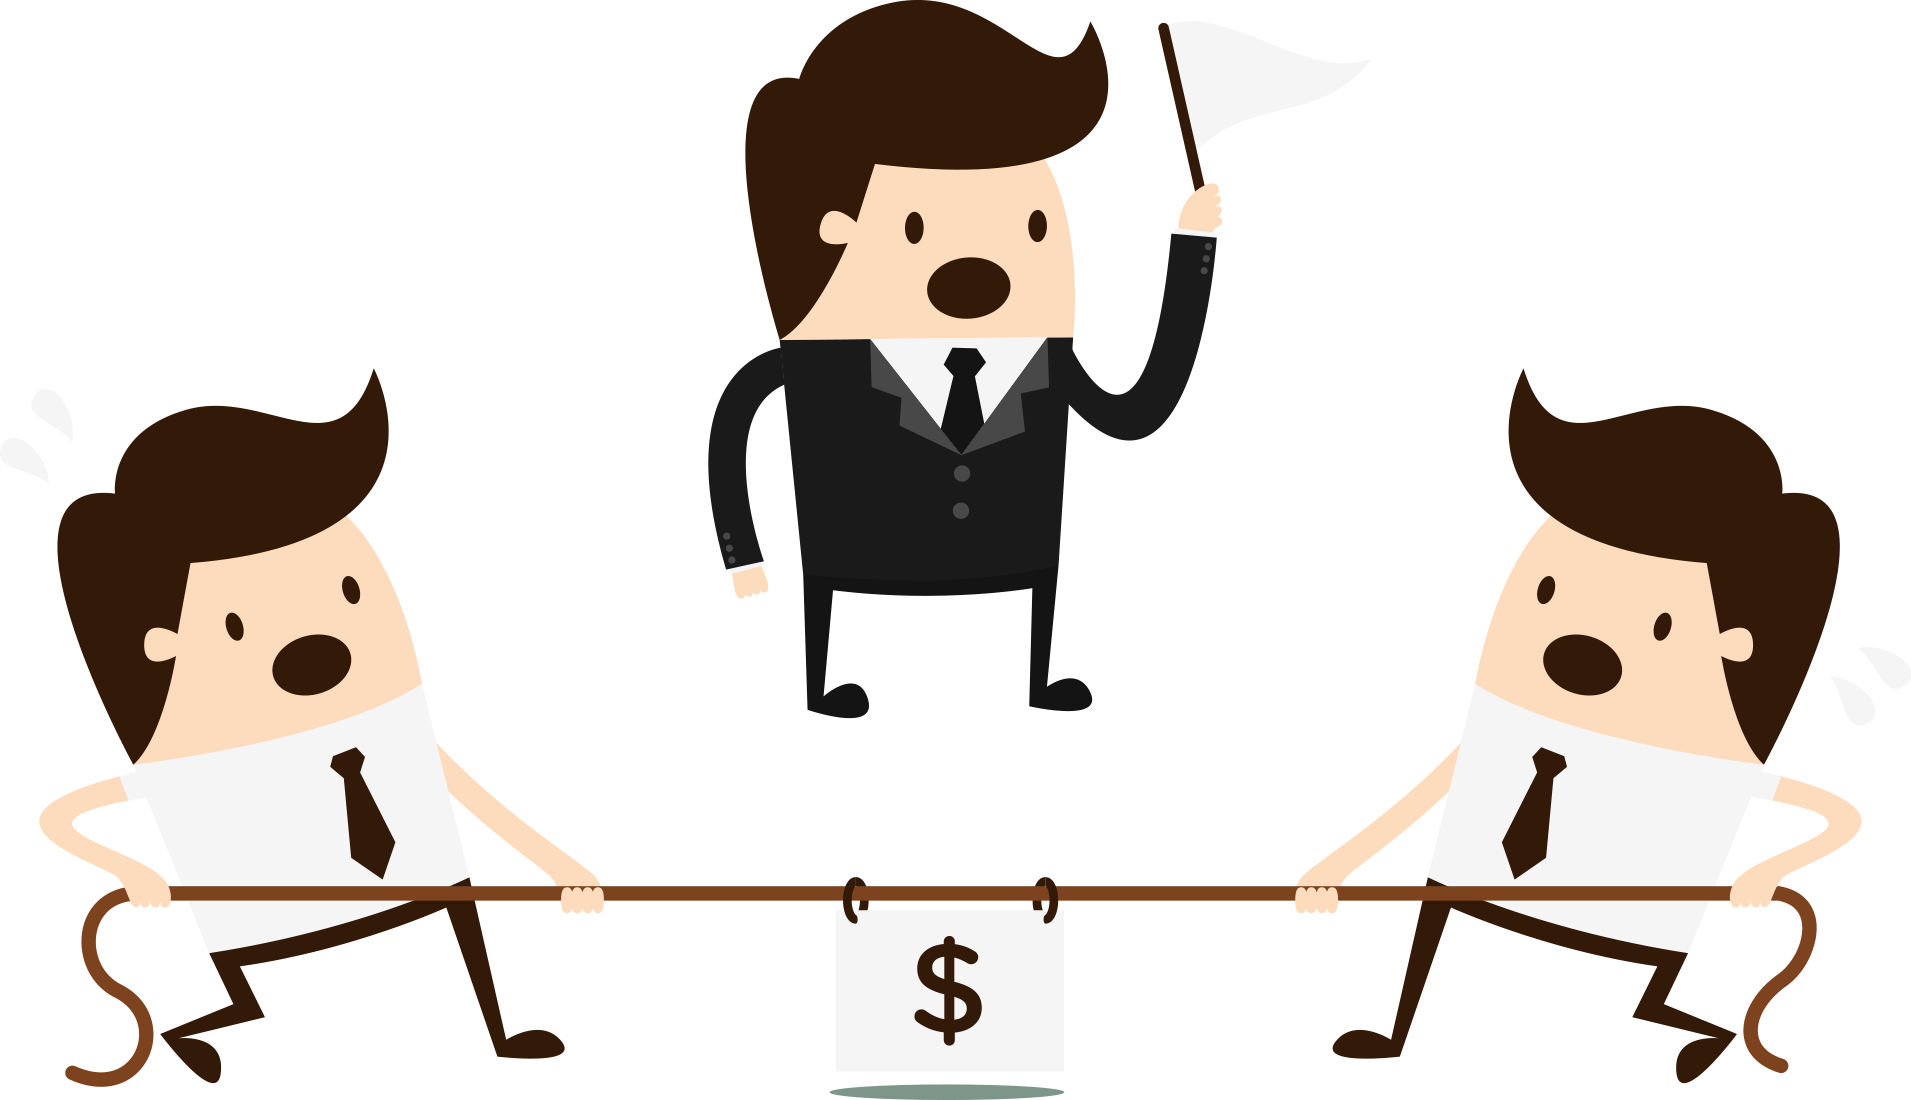 Competition clipart transparent. Price war business people